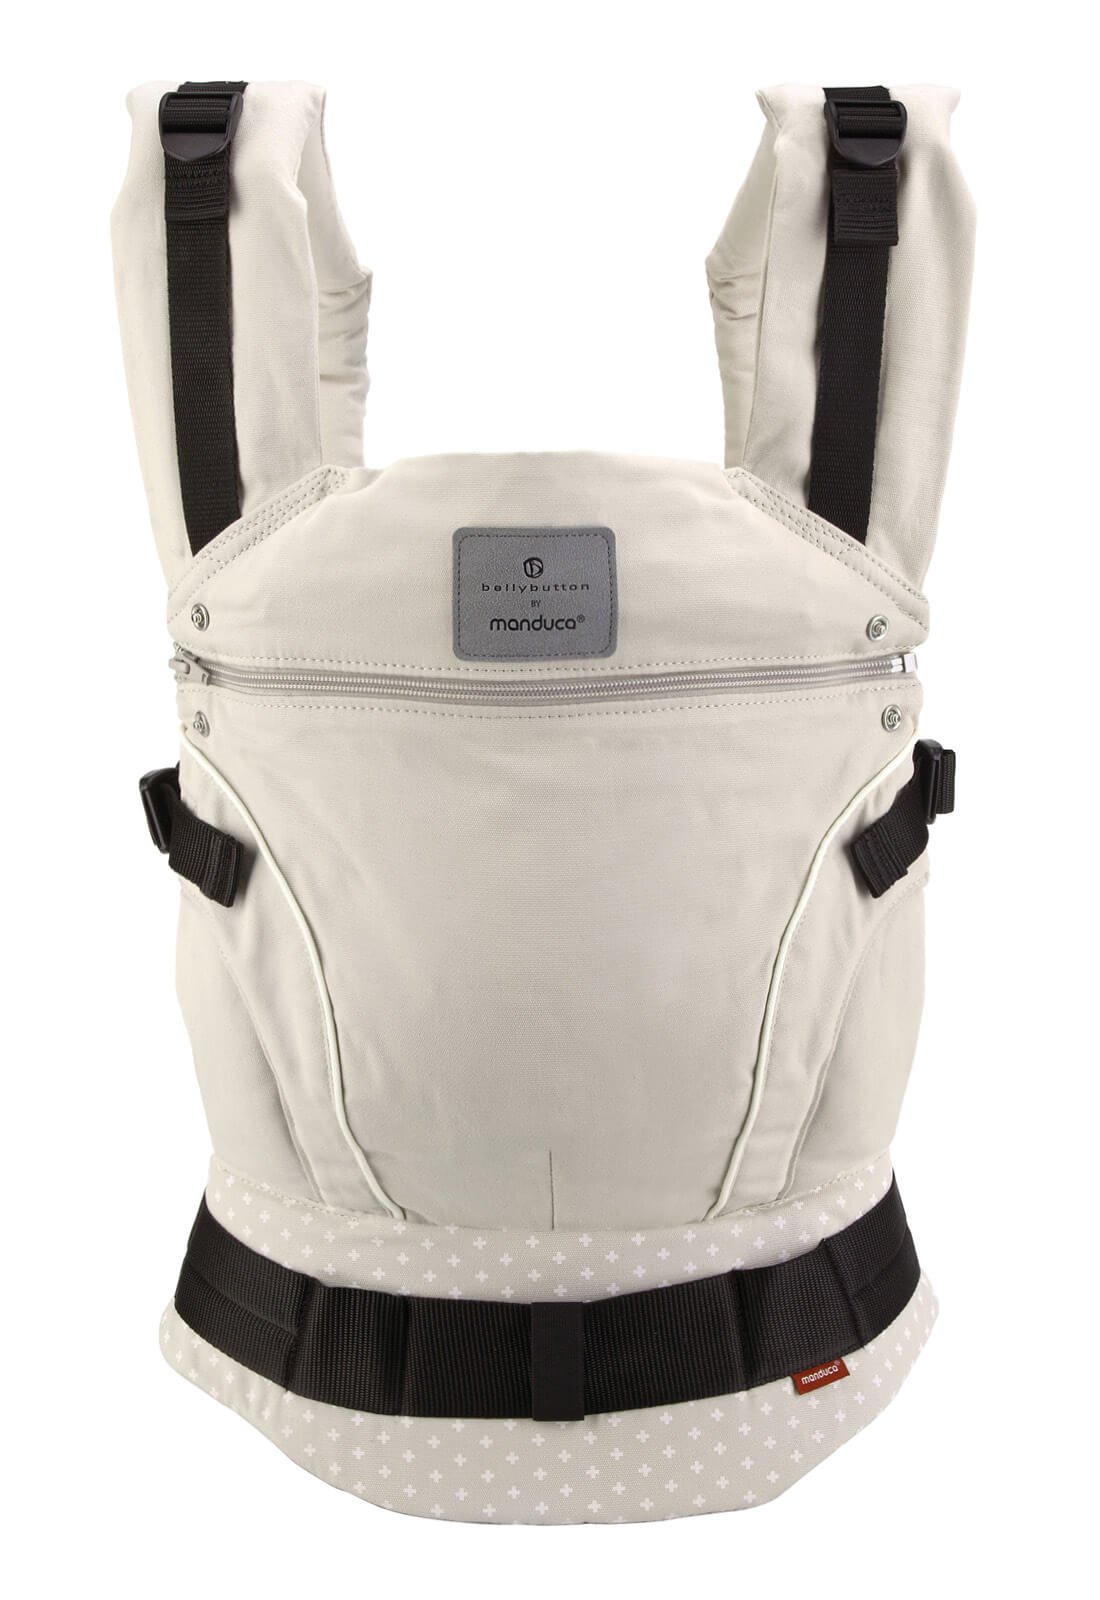 manduca First Baby Carrier > Bellybutton by manduca Edition, WildCrosses Sand < Child Carrier with Ergonomic Waist Belt & Patented Back Extension, Newborn to Toddler Manduca The anatomical shape of your belt makes all the weight to be on the hip, while the back, neck or shoulders of the person who takes padezcan The Manduca 222 Backpack allows you to position the child in front, behind or on the hip, always looking at the person who takes you The backpack also features a concealed hood and shades that can be to child's head when sleeping or to protect it from the sun and rain 1